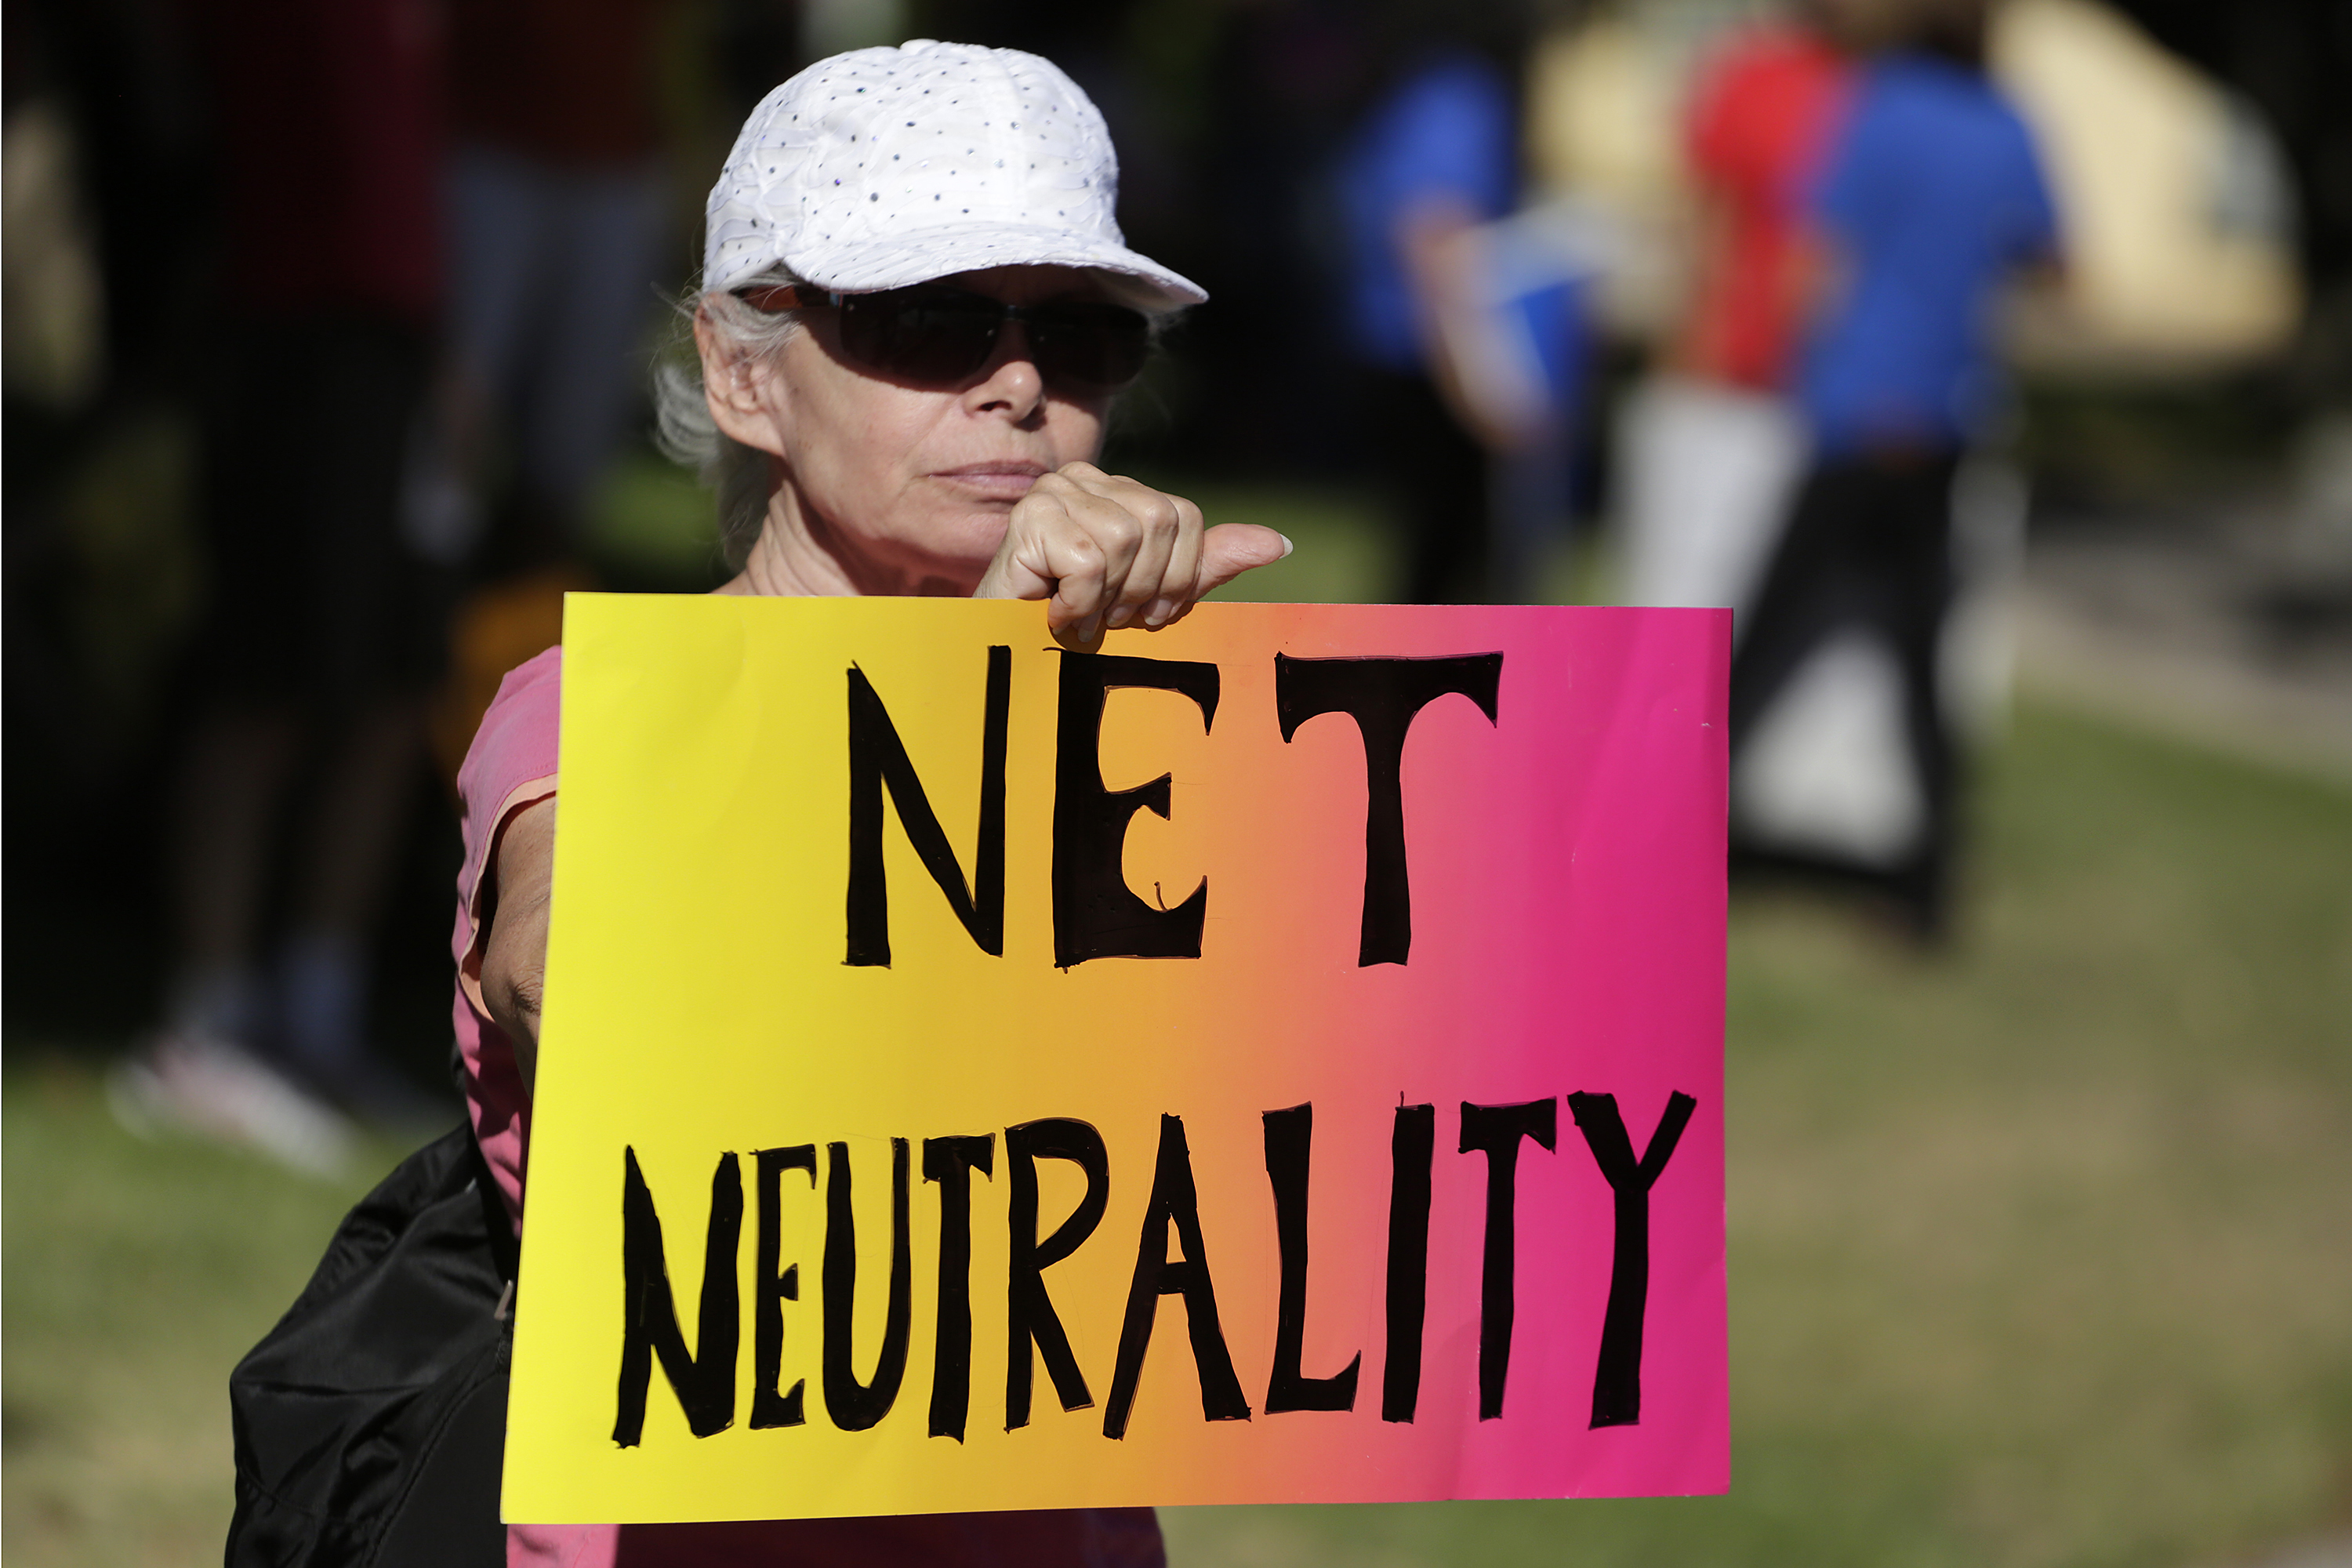 A protester attends a net-neutrality rally in Los Angeles on July 23, 2014